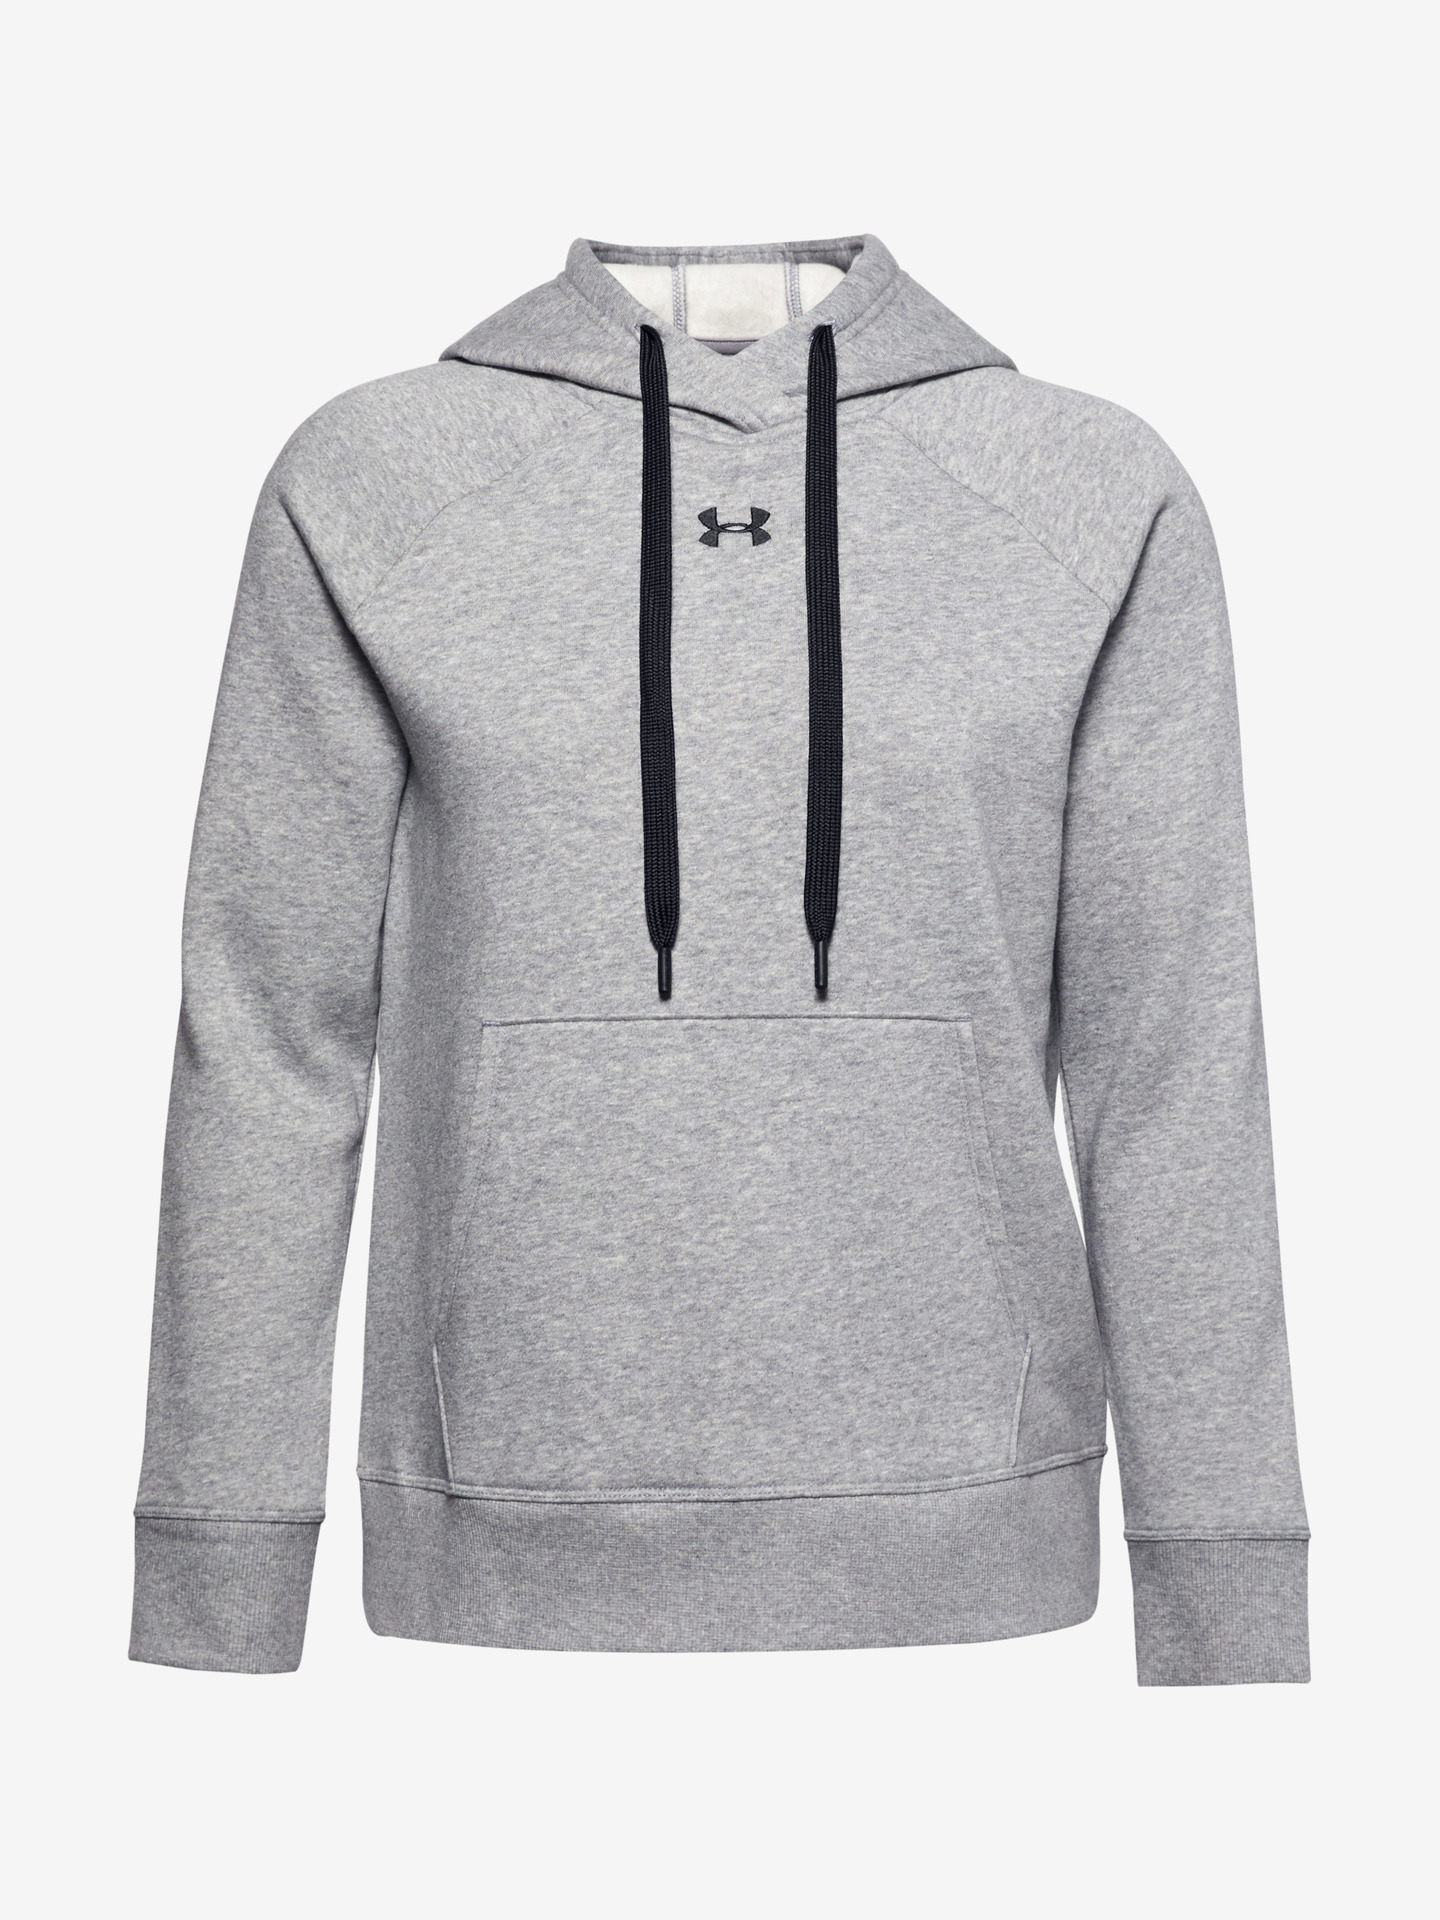 Rival Mikina Under Armour Šedá